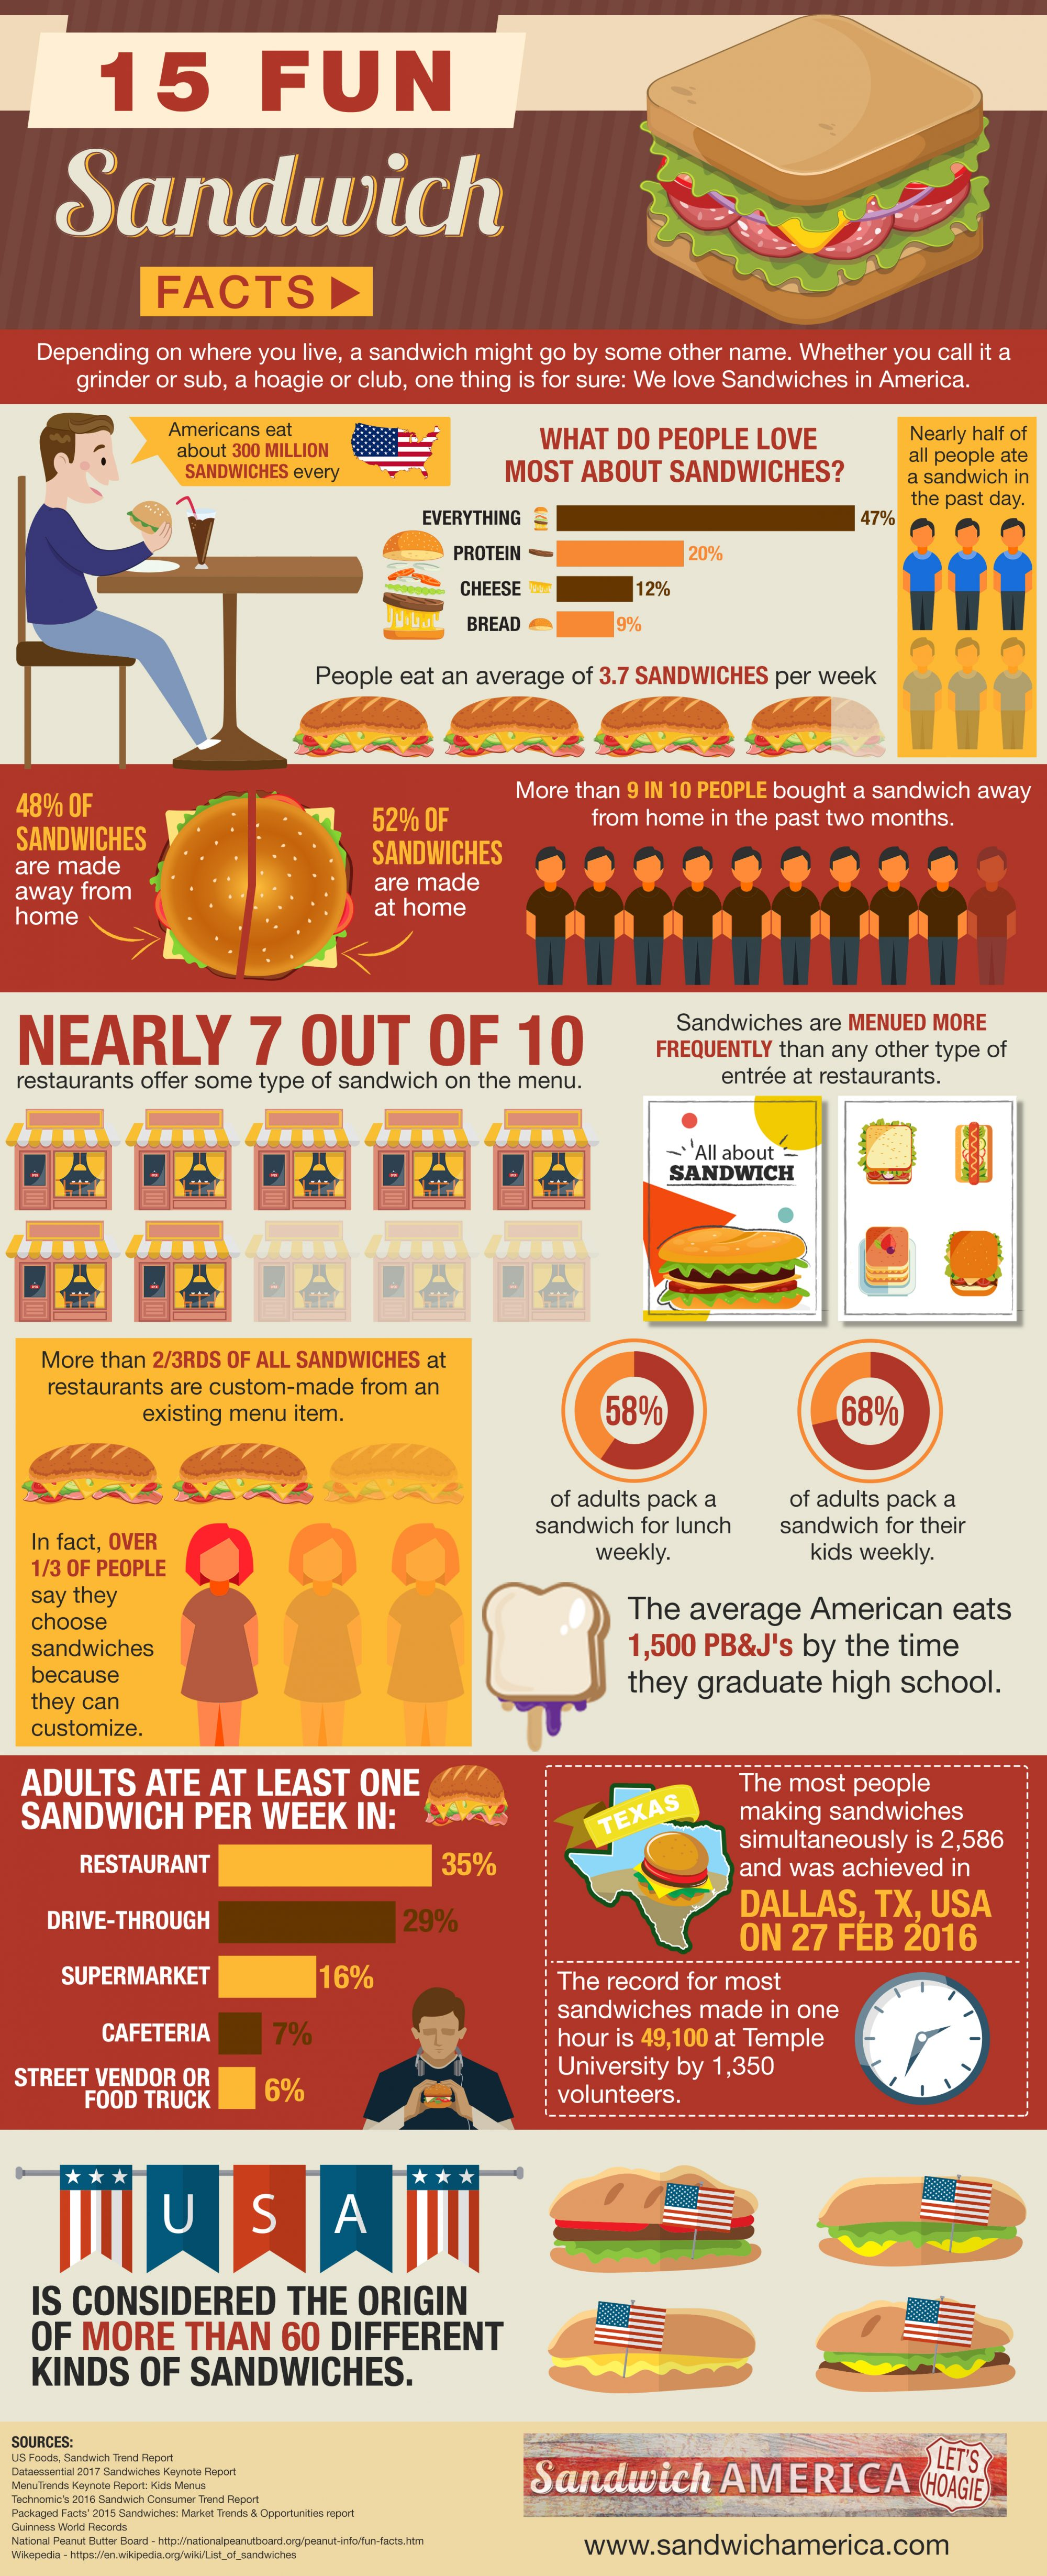 An infographic type visual with 15 fun facts related to sandwiches, created by Sandwich America for National Sandwich Day.